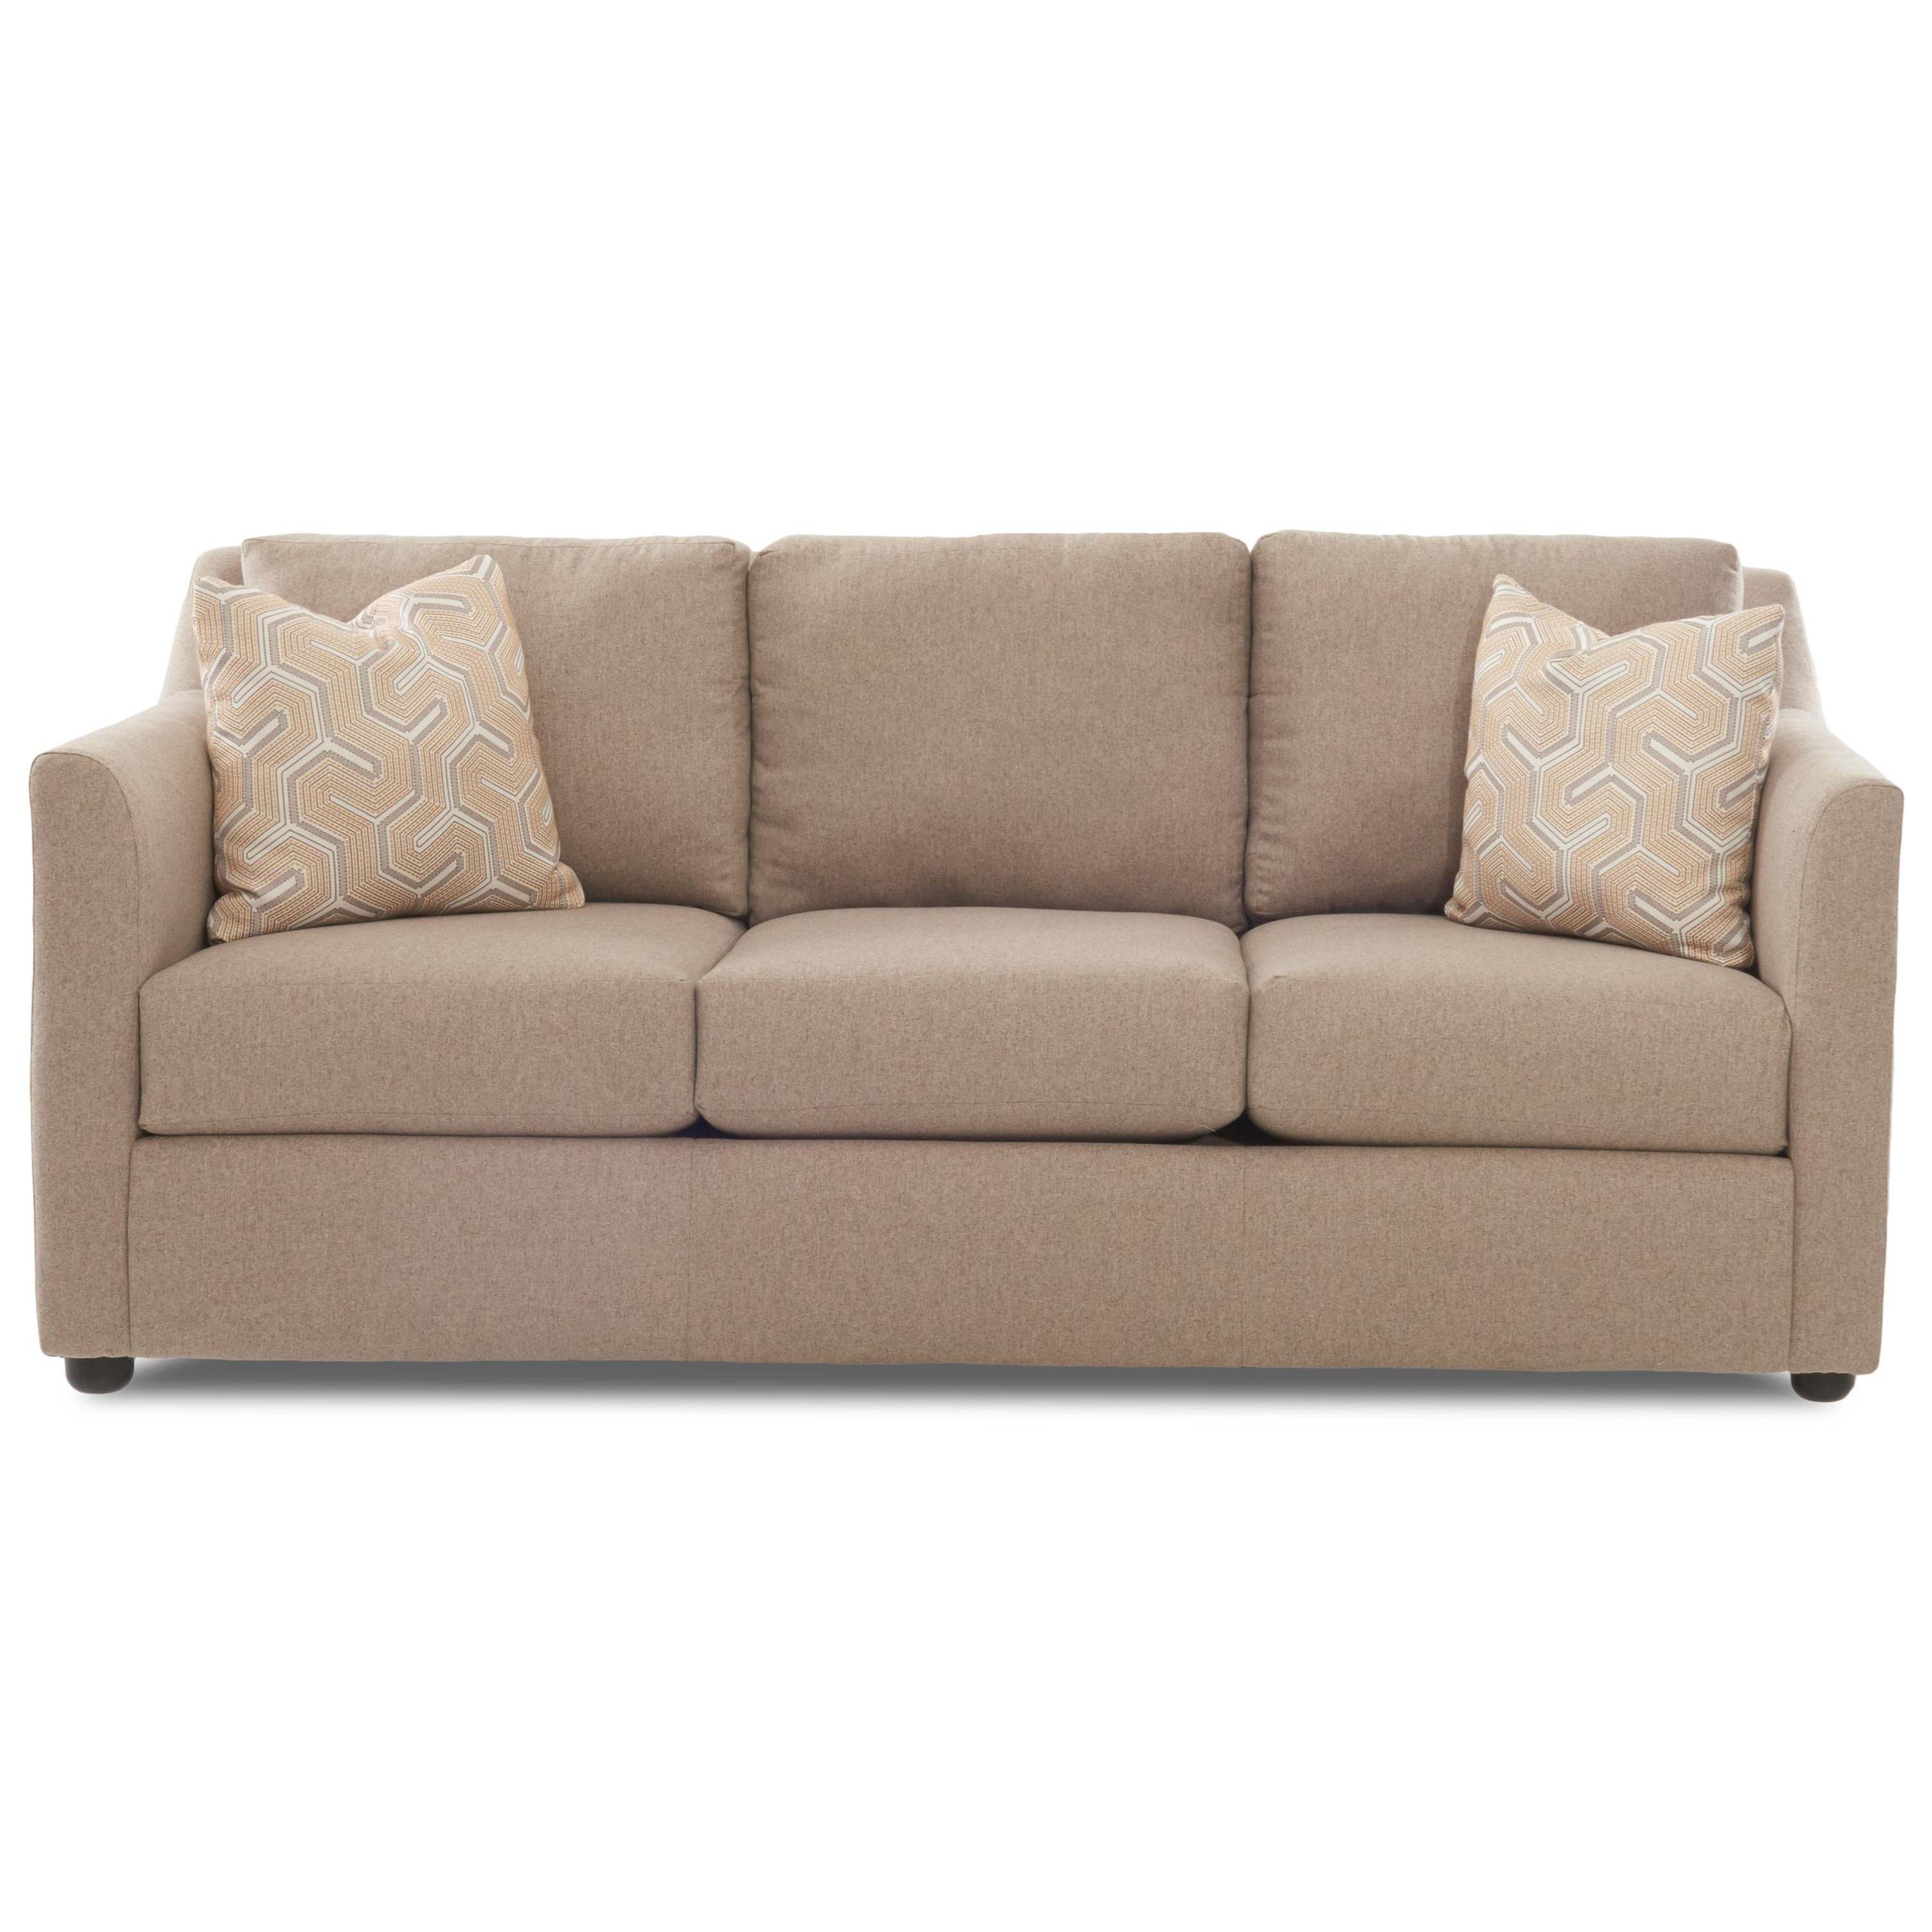 foam sofa sleeper scala leather furniture village klaussner del mar enso memory queen value city marenso